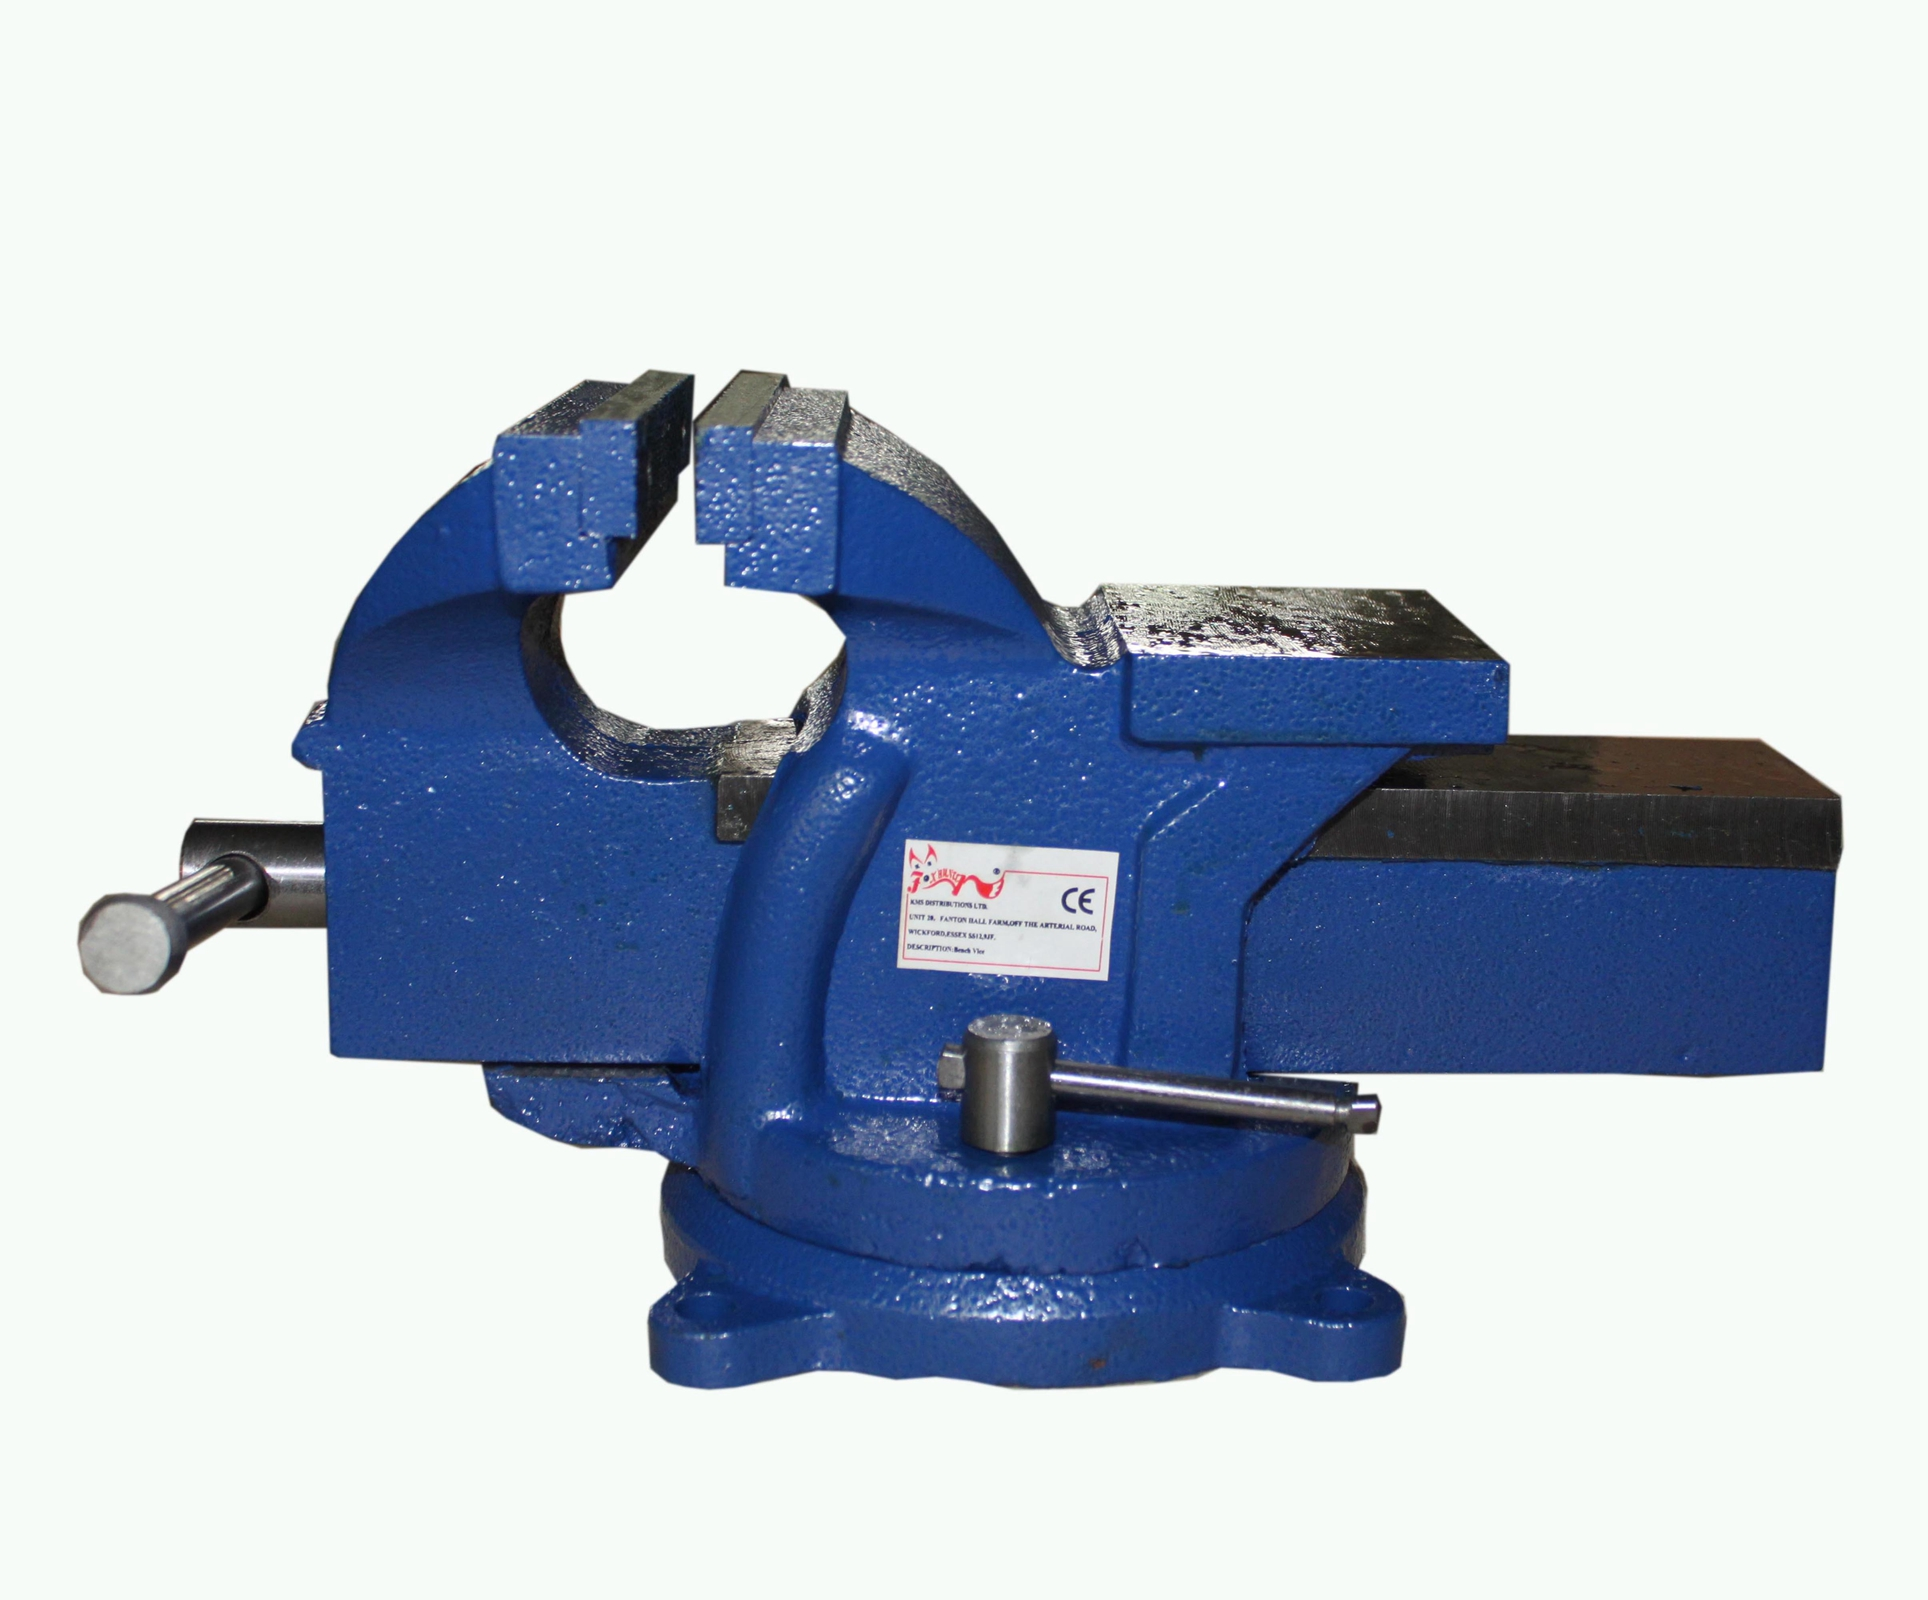 Foxhunter bench vice vise 6 inch 150mm jaw clamp swivel base for workbench table ebay 6 inch bench vise